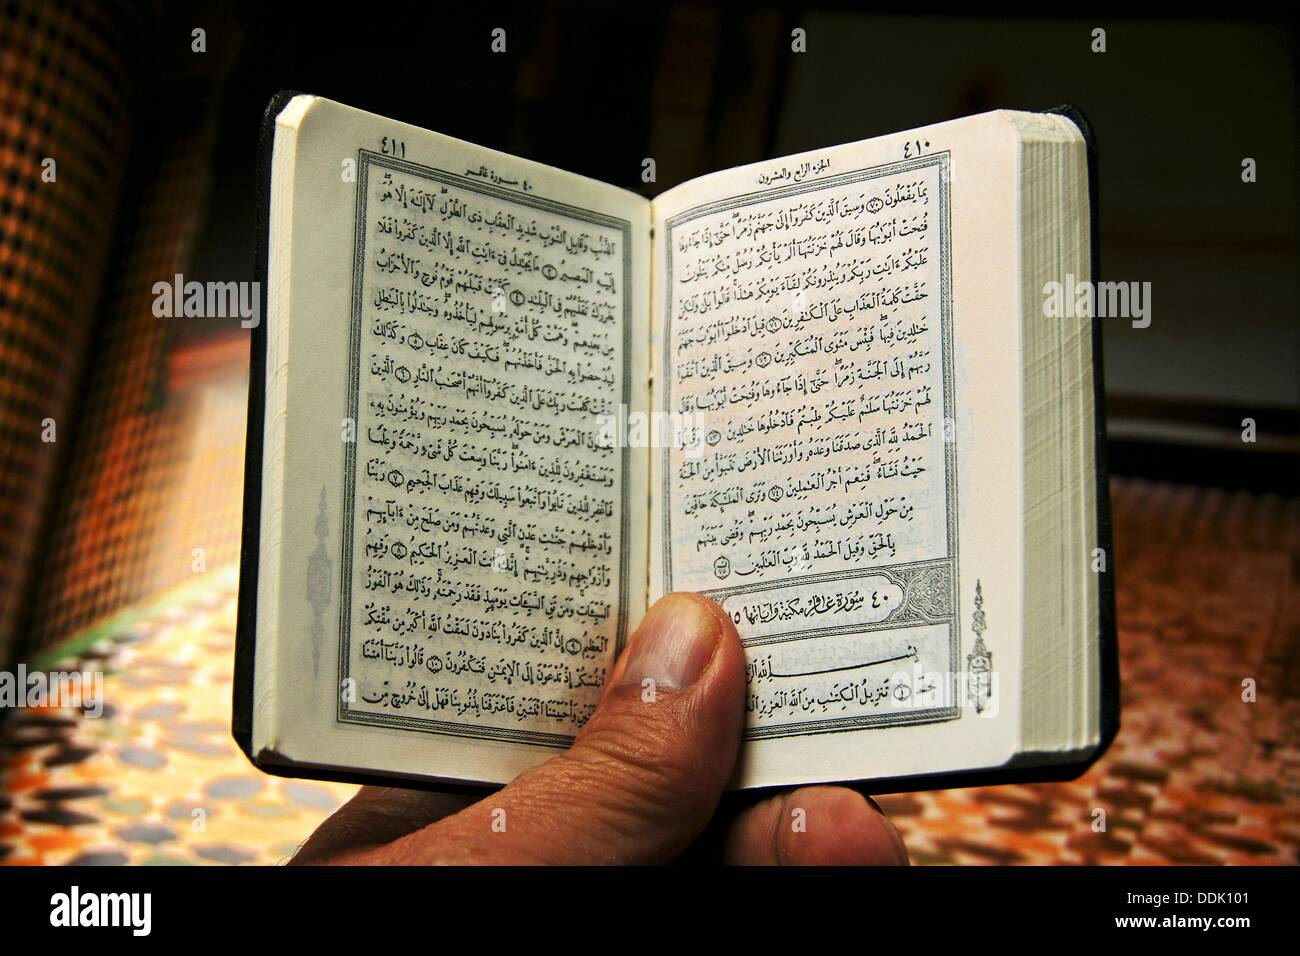 Reading the Quran - Stock Image